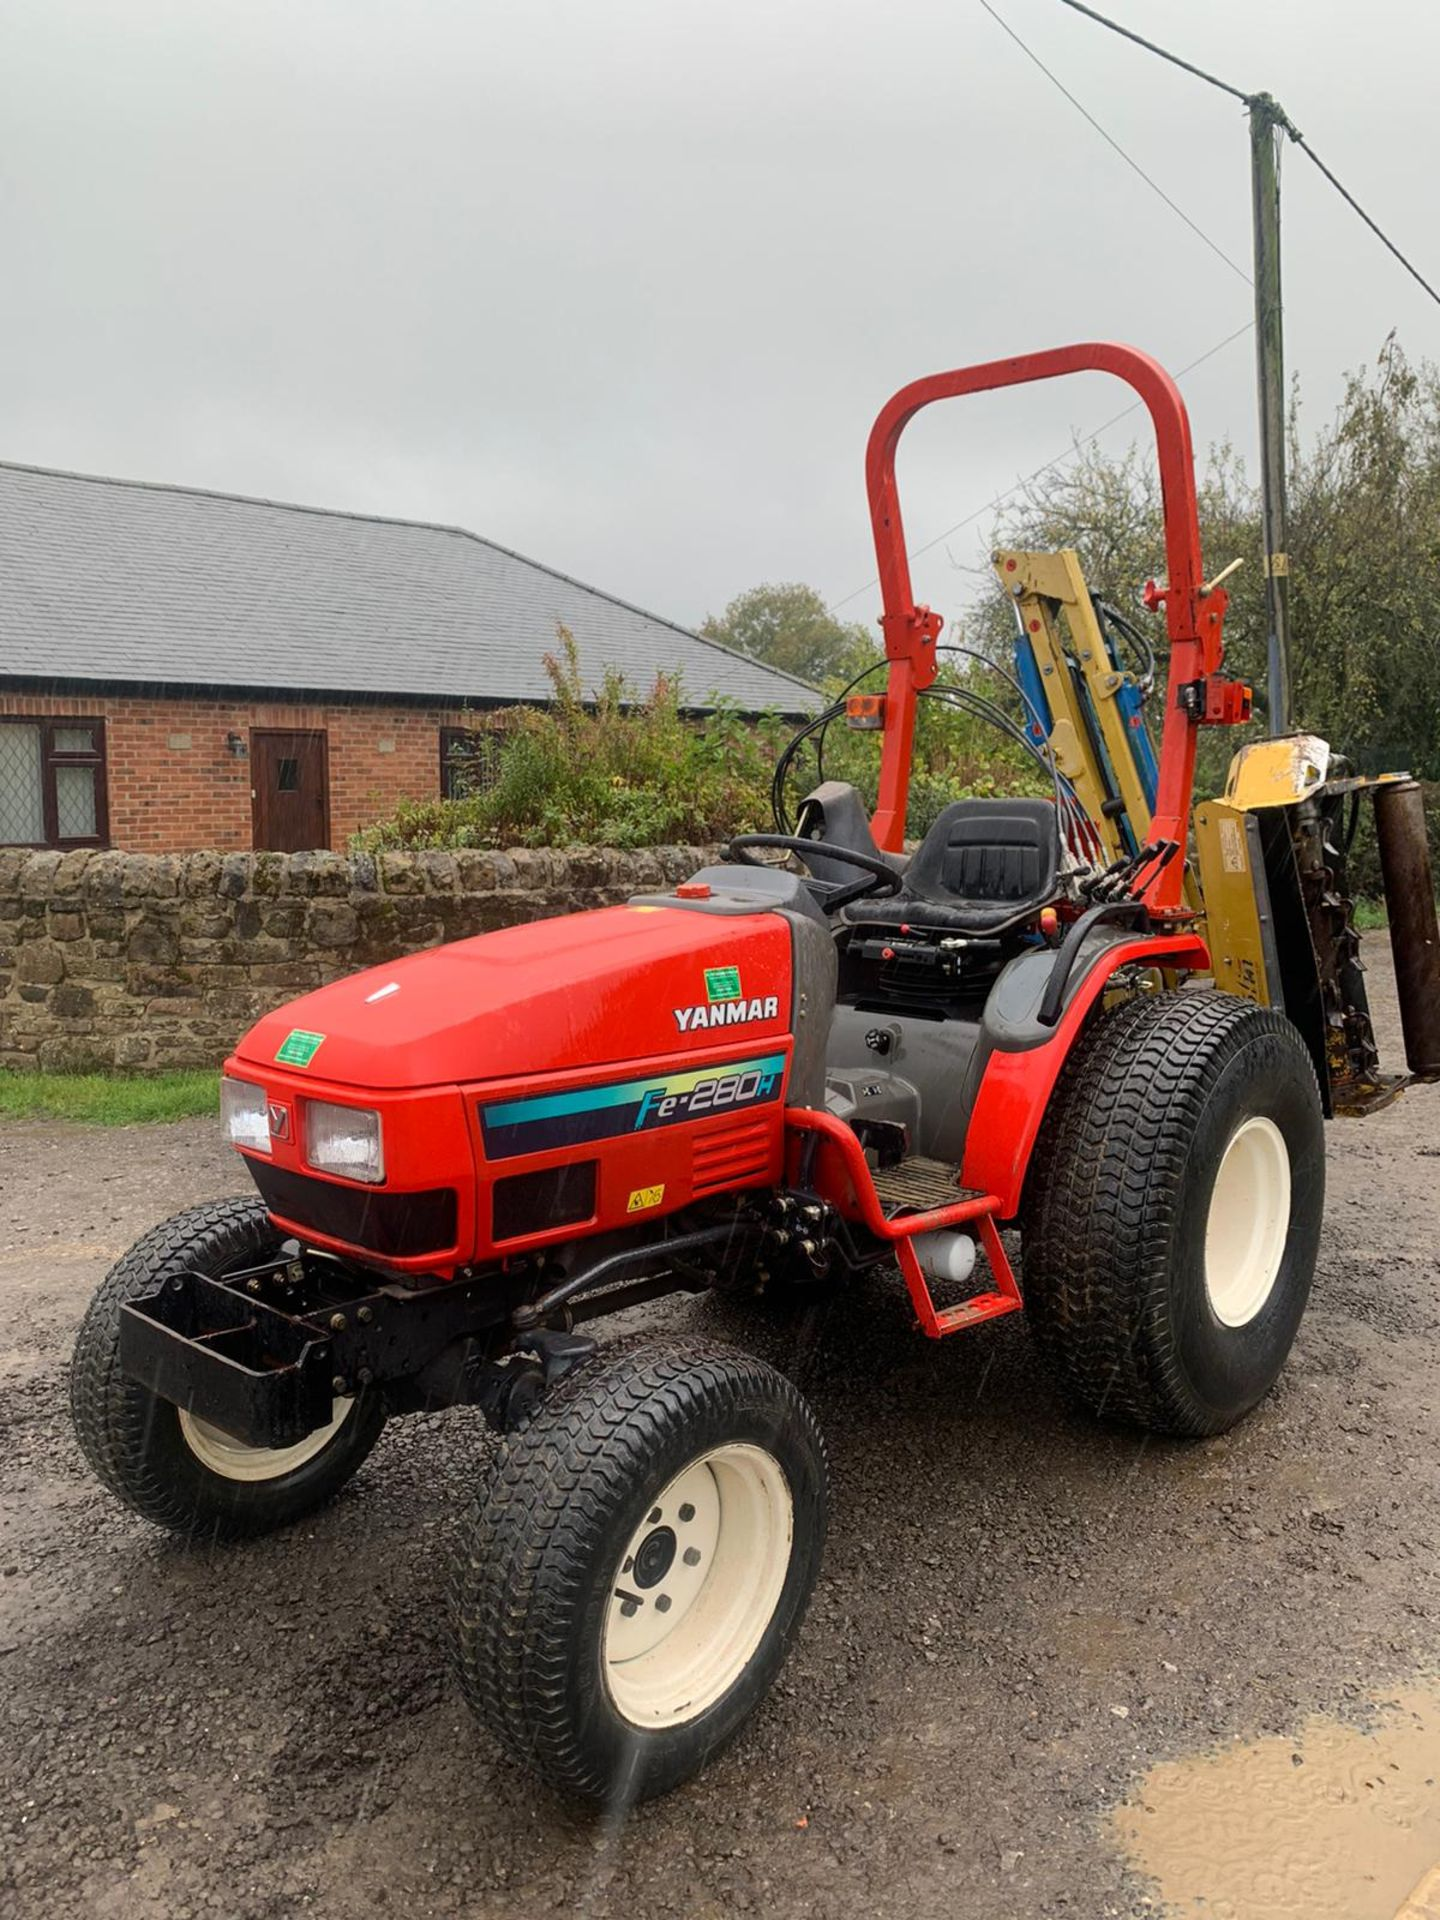 Lot 31 - YANMAR FE280H COMPACT TRACTOR, RUNS, DRIVES AND WORKS, CLEAN MACHINE, 716 HOURS FROM NEW *PLUS VAT*